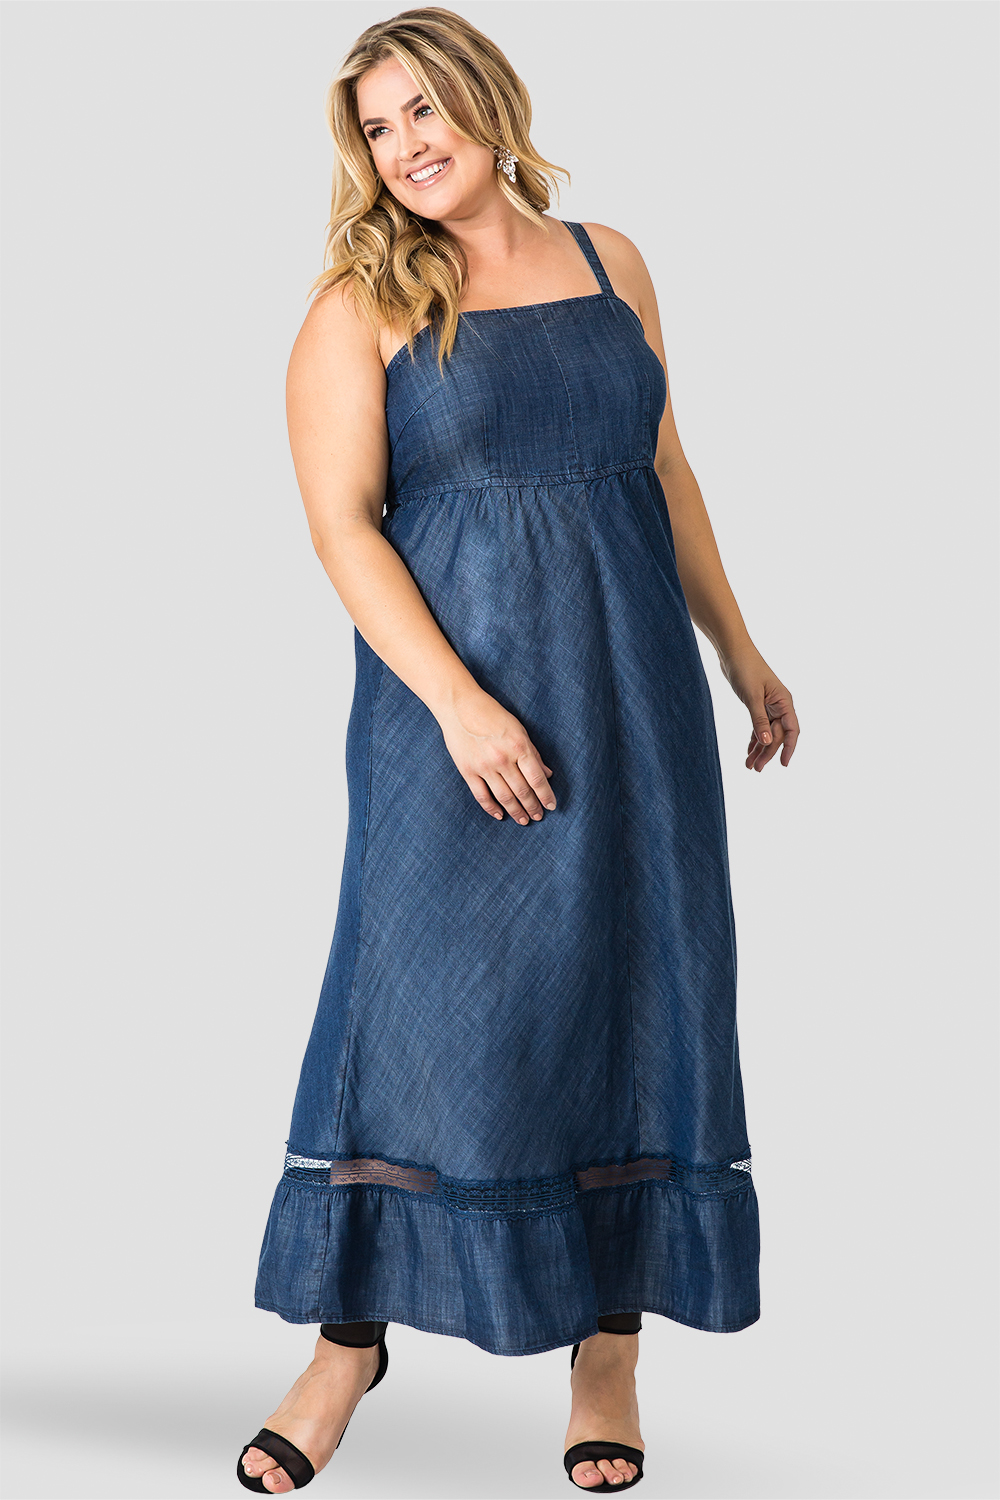 Standards & Practices Women's Spaghetti Strap Maxi Tencel Denim & Lace Dress